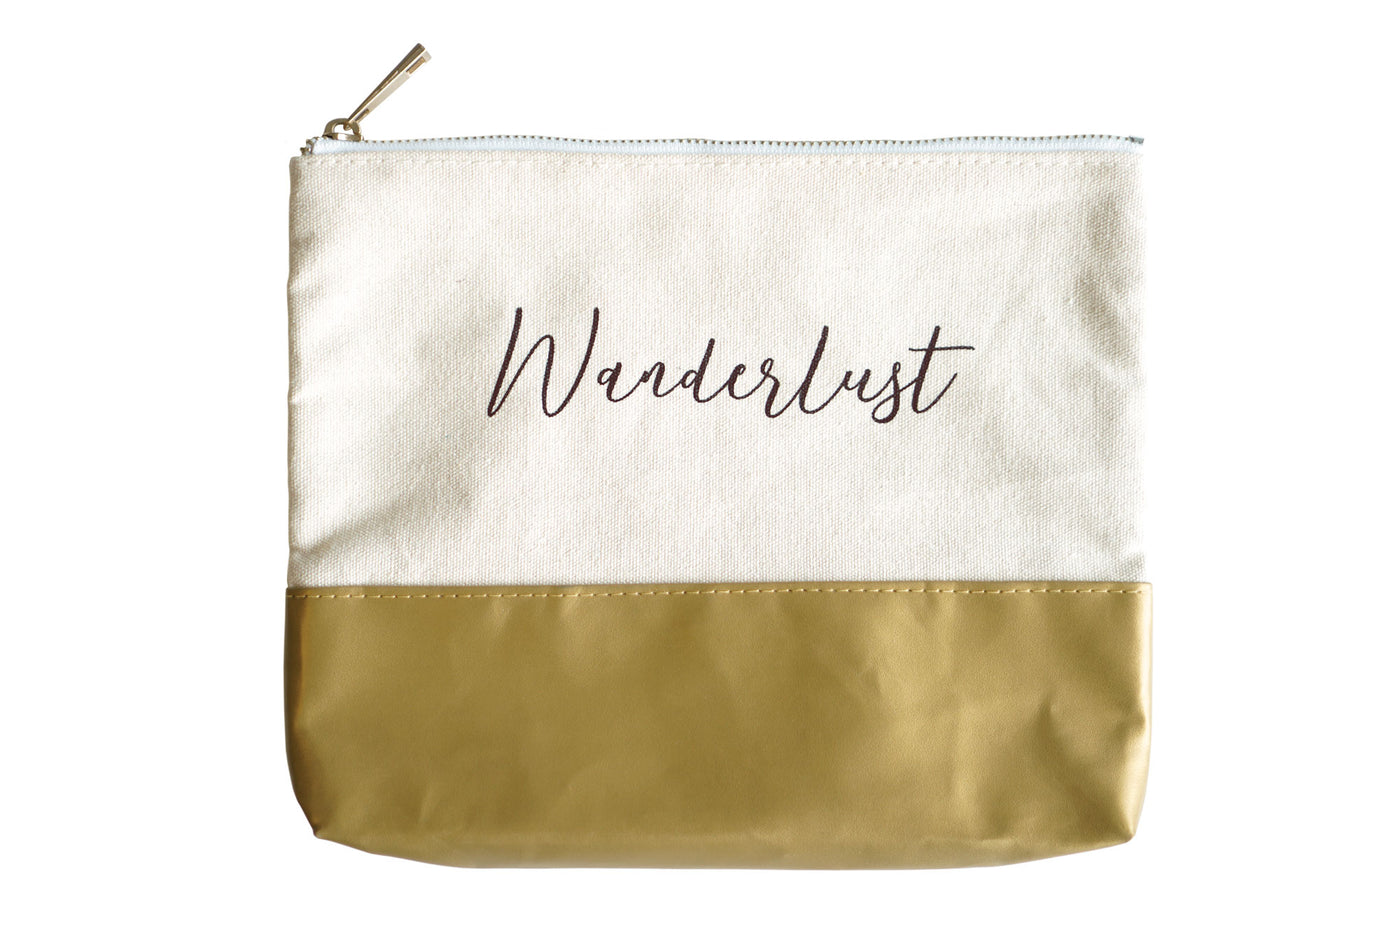 WANDERLUST MAKEUP BAG